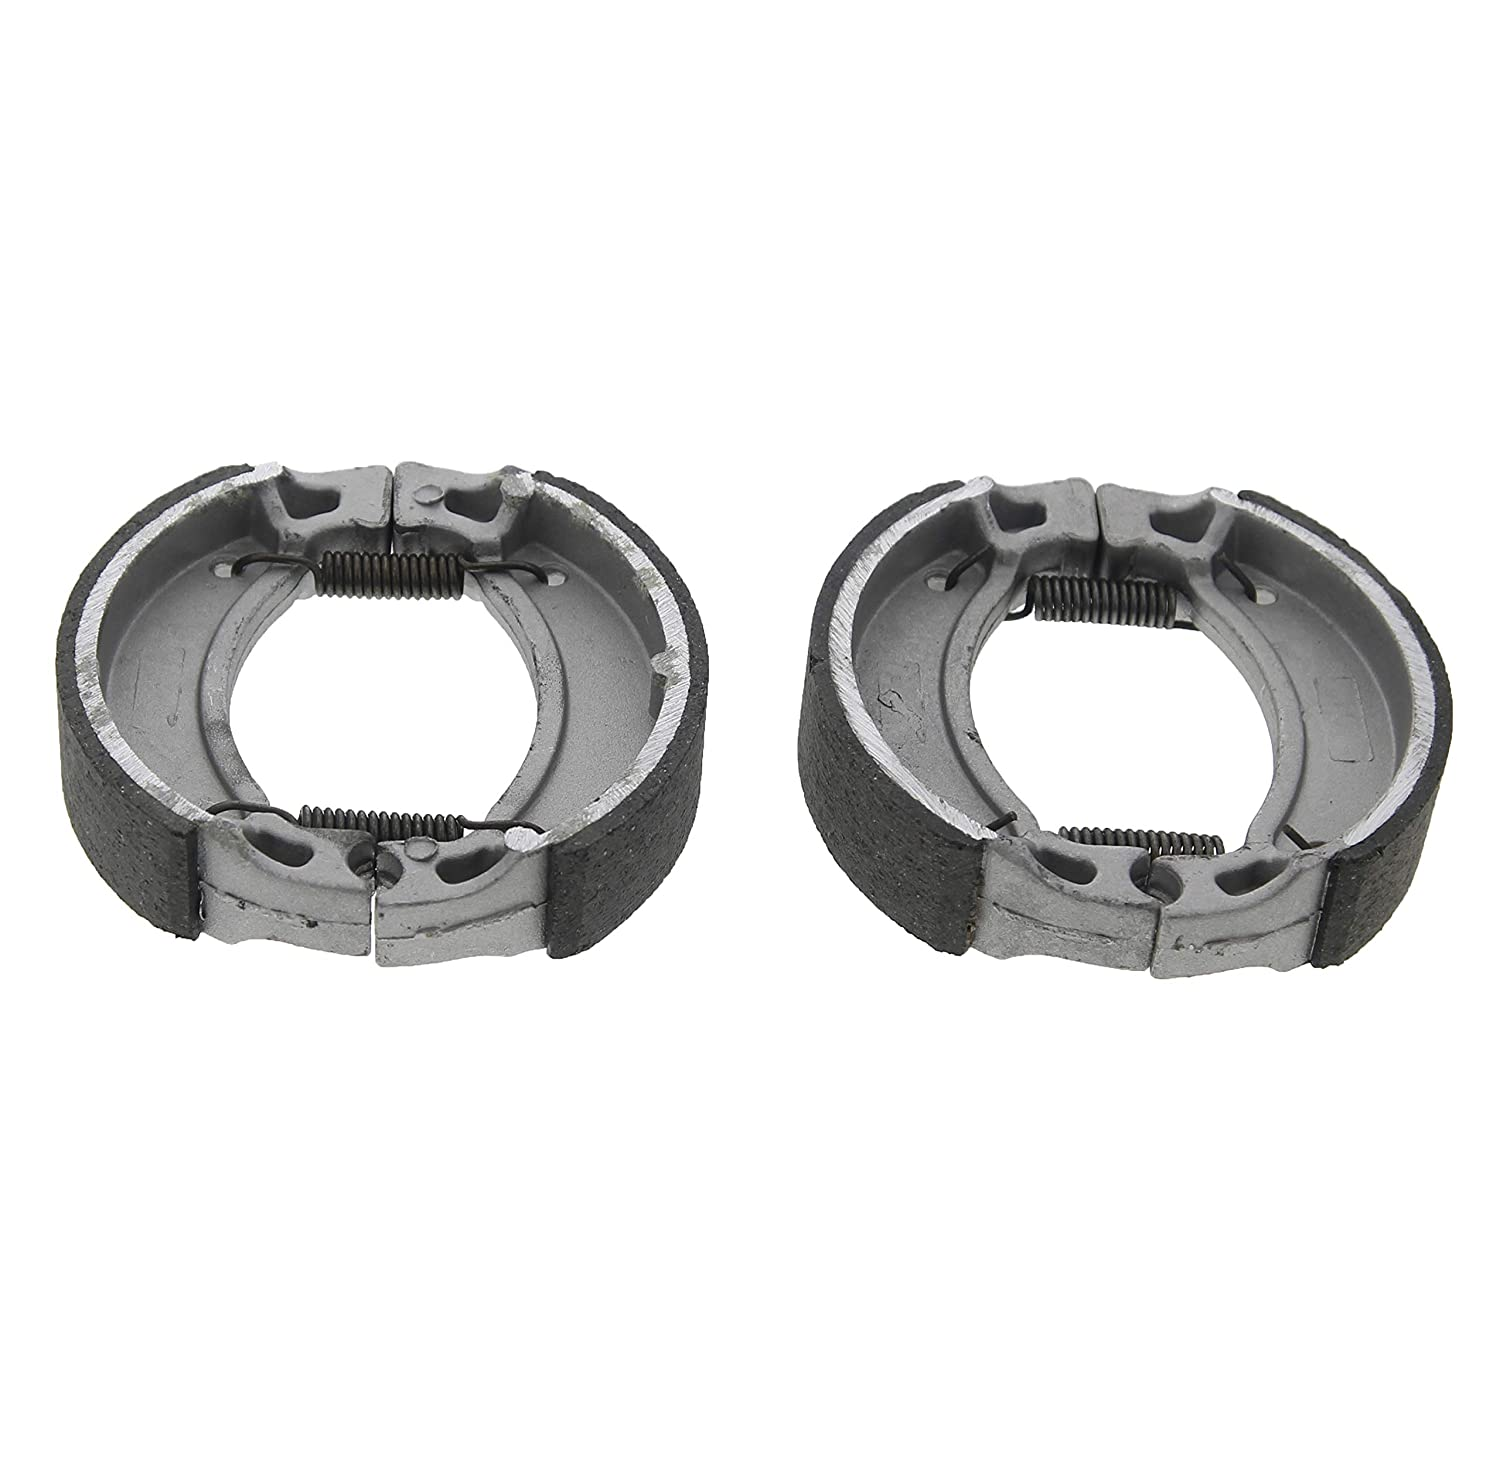 Brake Shoes fits Yamaha Raptor 50 YFM50R 2004-2007 Front Brakes by Race-Driven